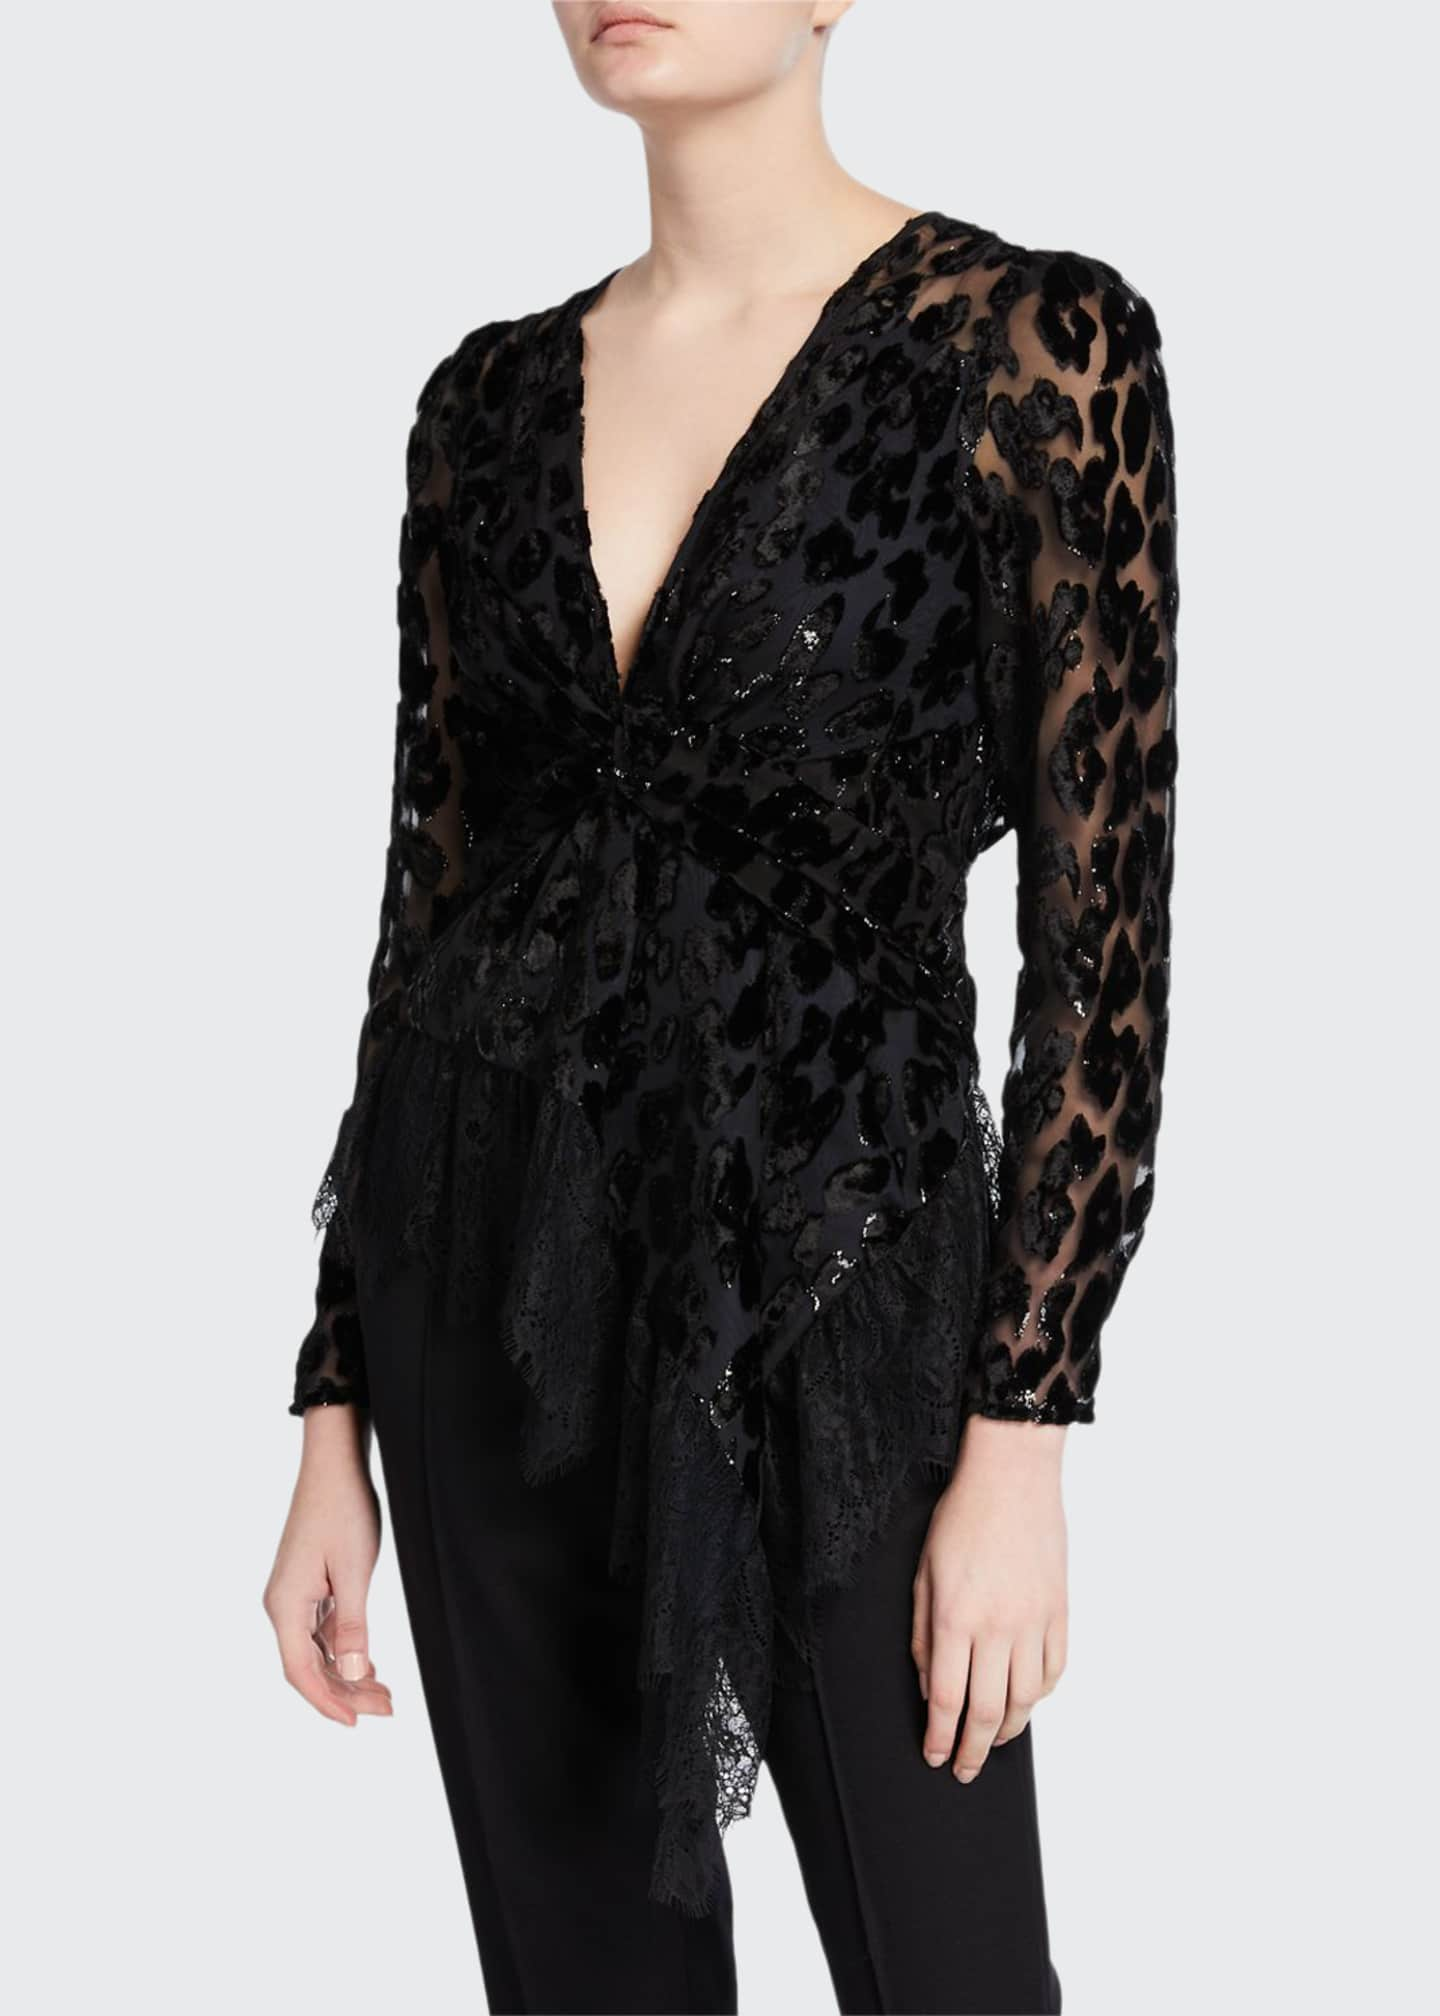 Self-Portrait Twisted Metallic Peplum Top with Lace